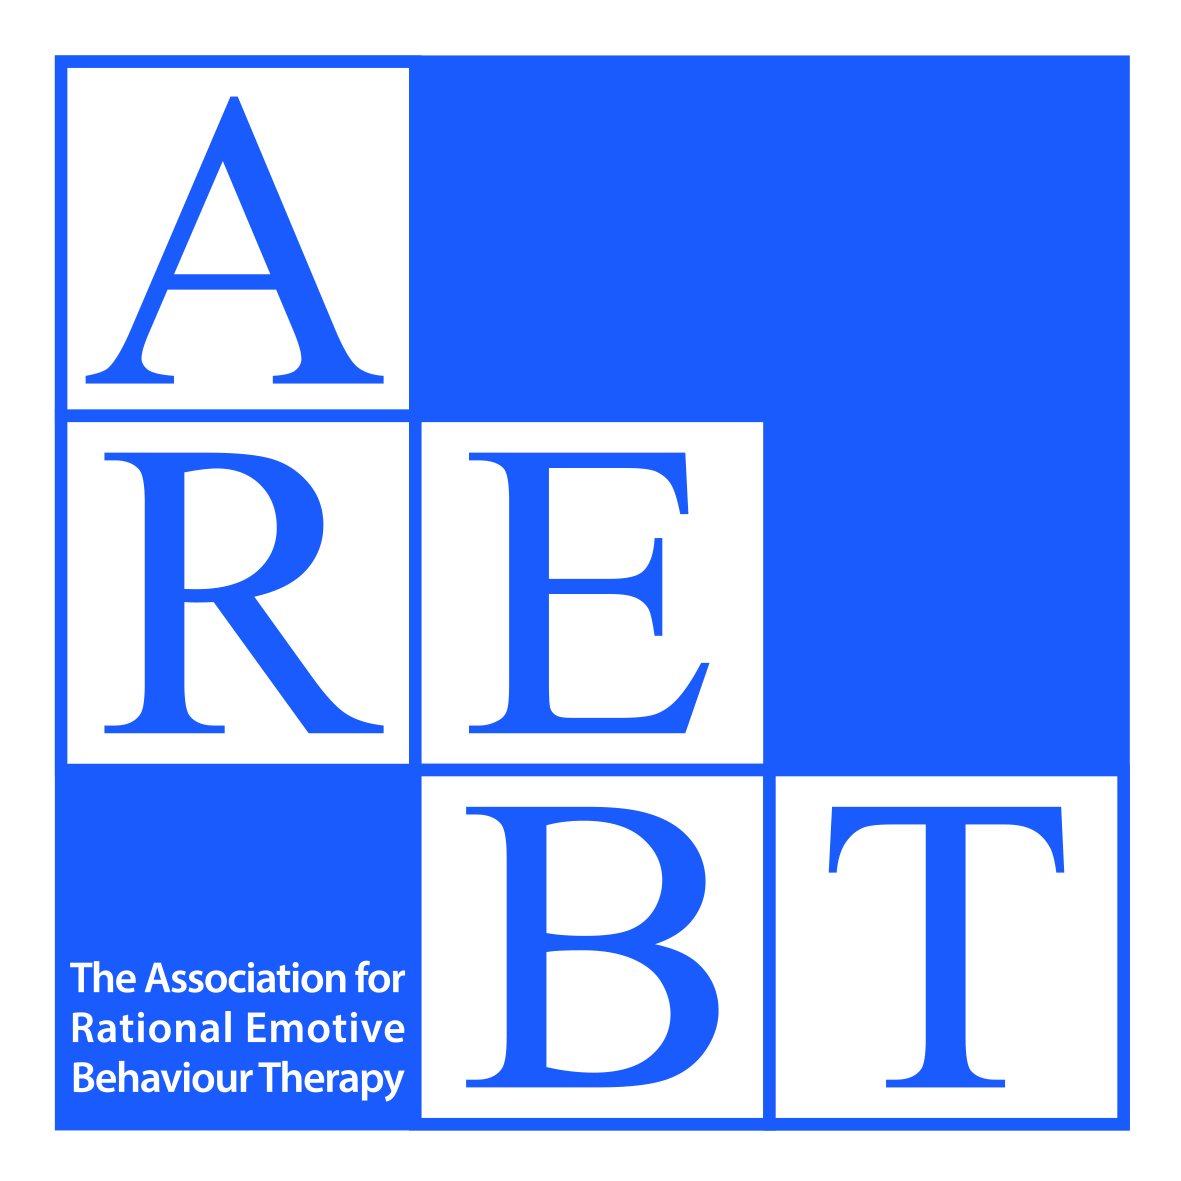 Association for Rational Emotive Behaviour Therapy (AREBT) deal